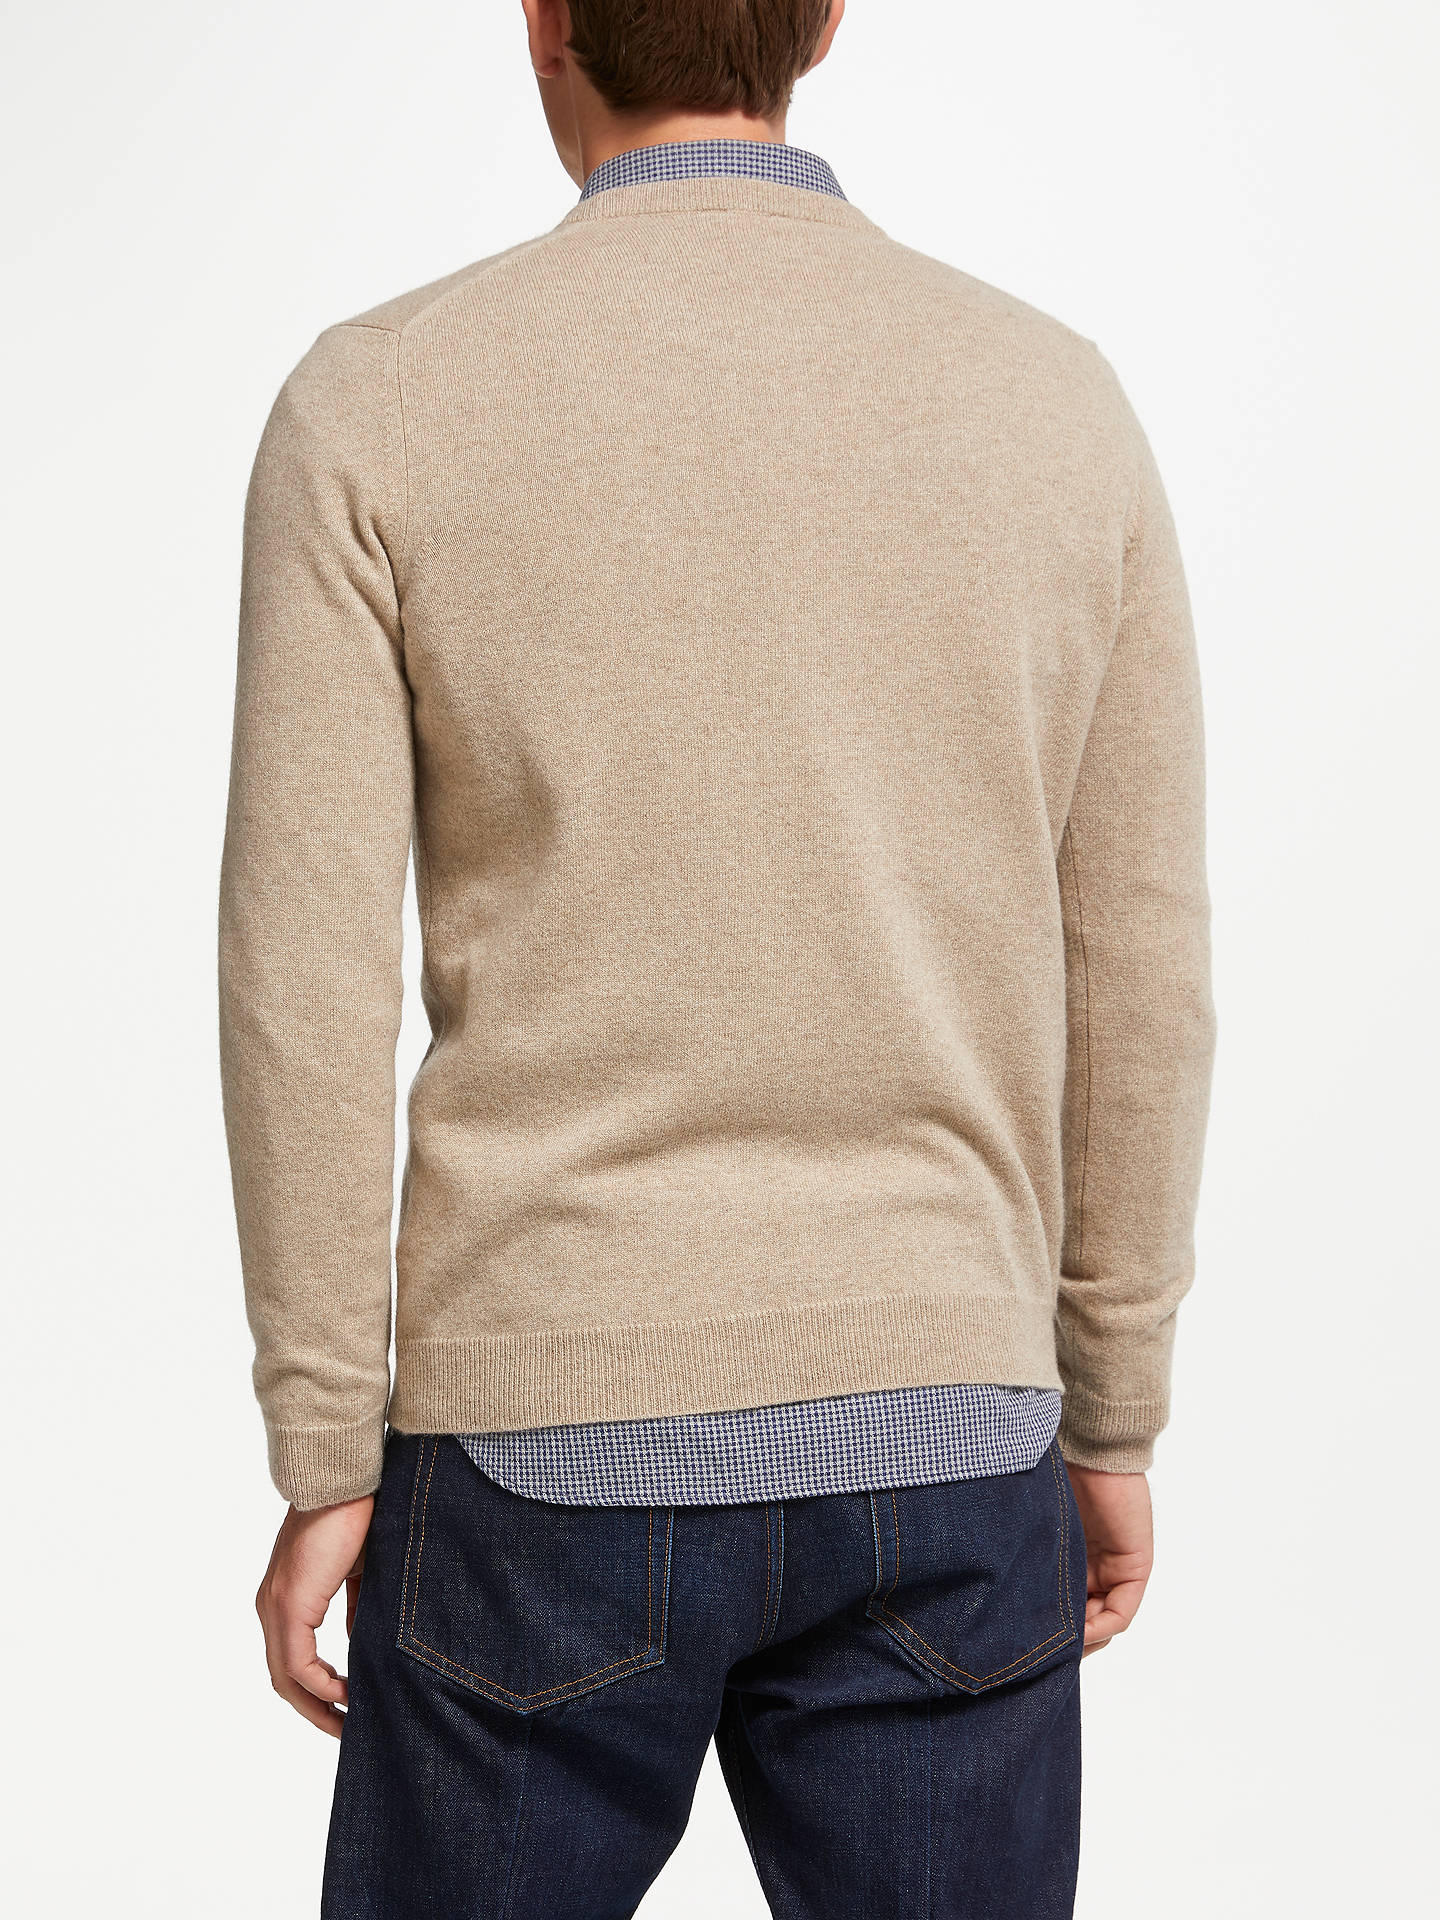 Buy John Lewis & Partners Italian Cashmere Crew Neck Jumper, Natural, XXL Online at johnlewis.com